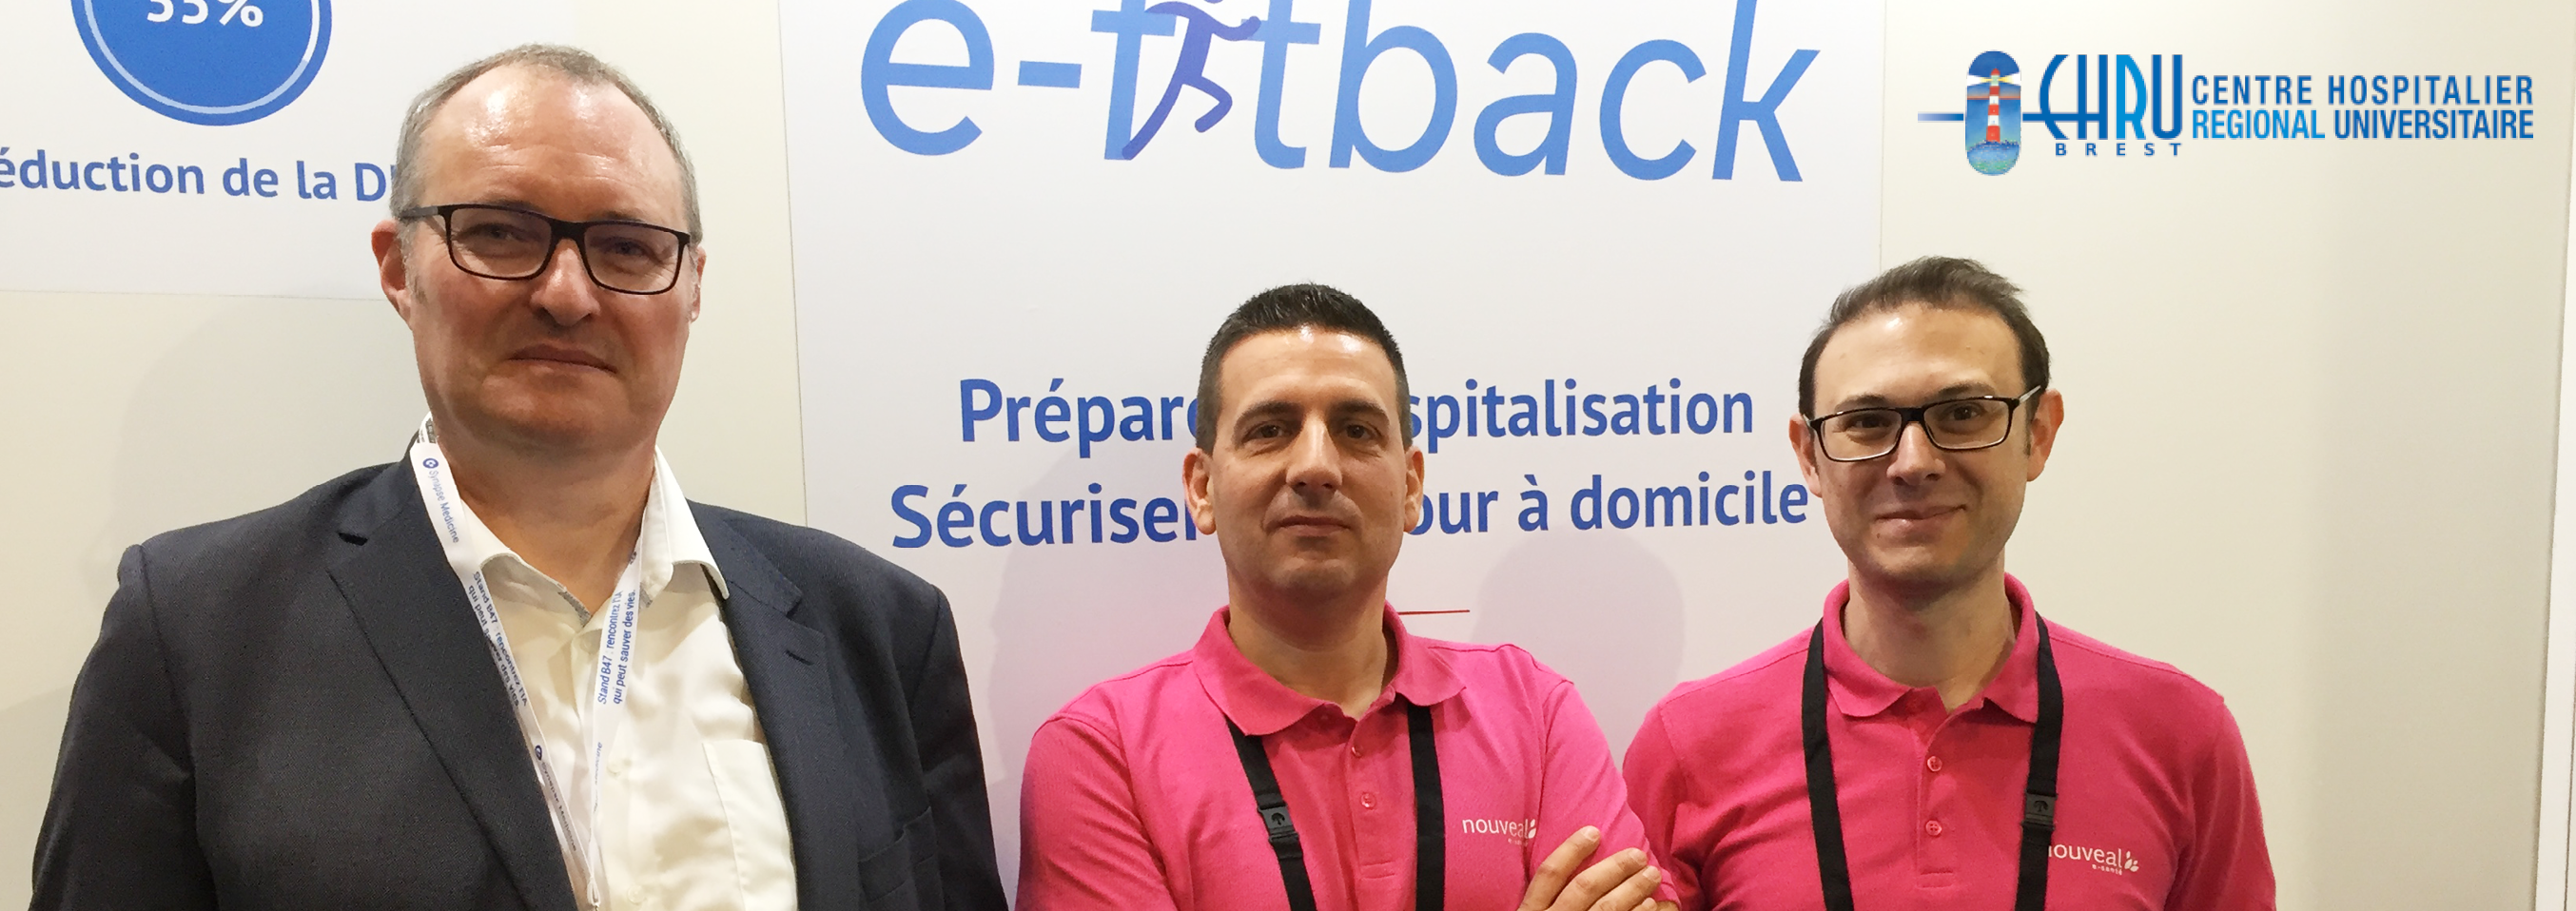 Le CHU de Brest booste son virage ambulatoire avec e-fitback